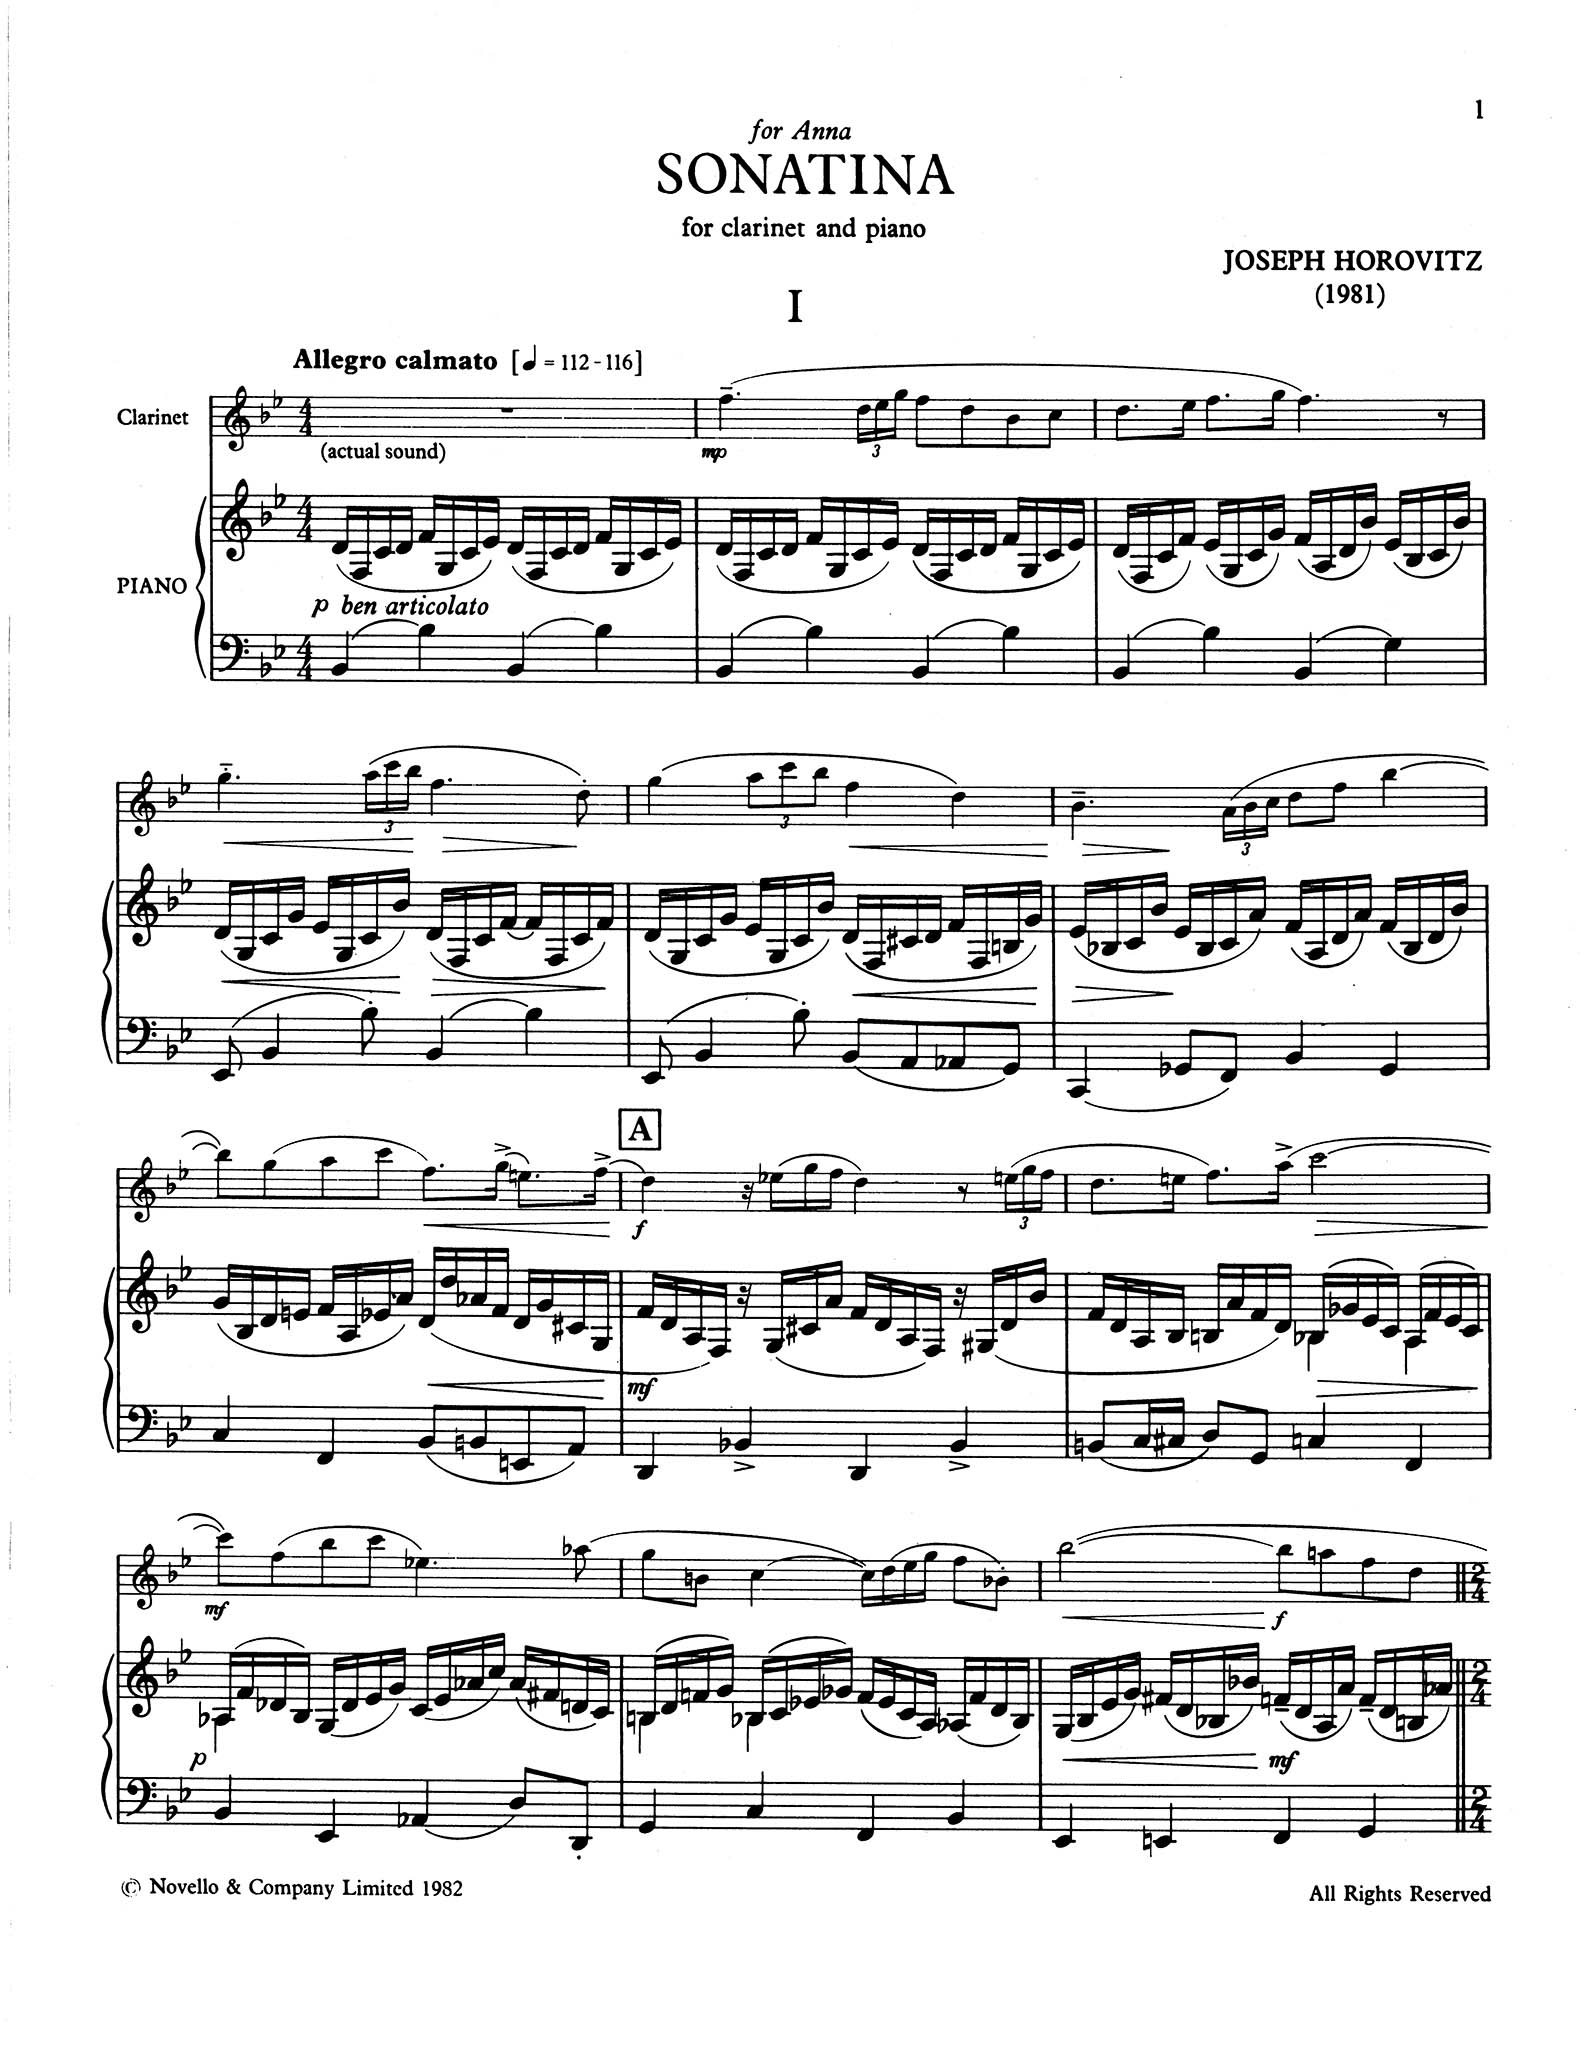 Sonatina for Clarinet & Piano - Movement 1